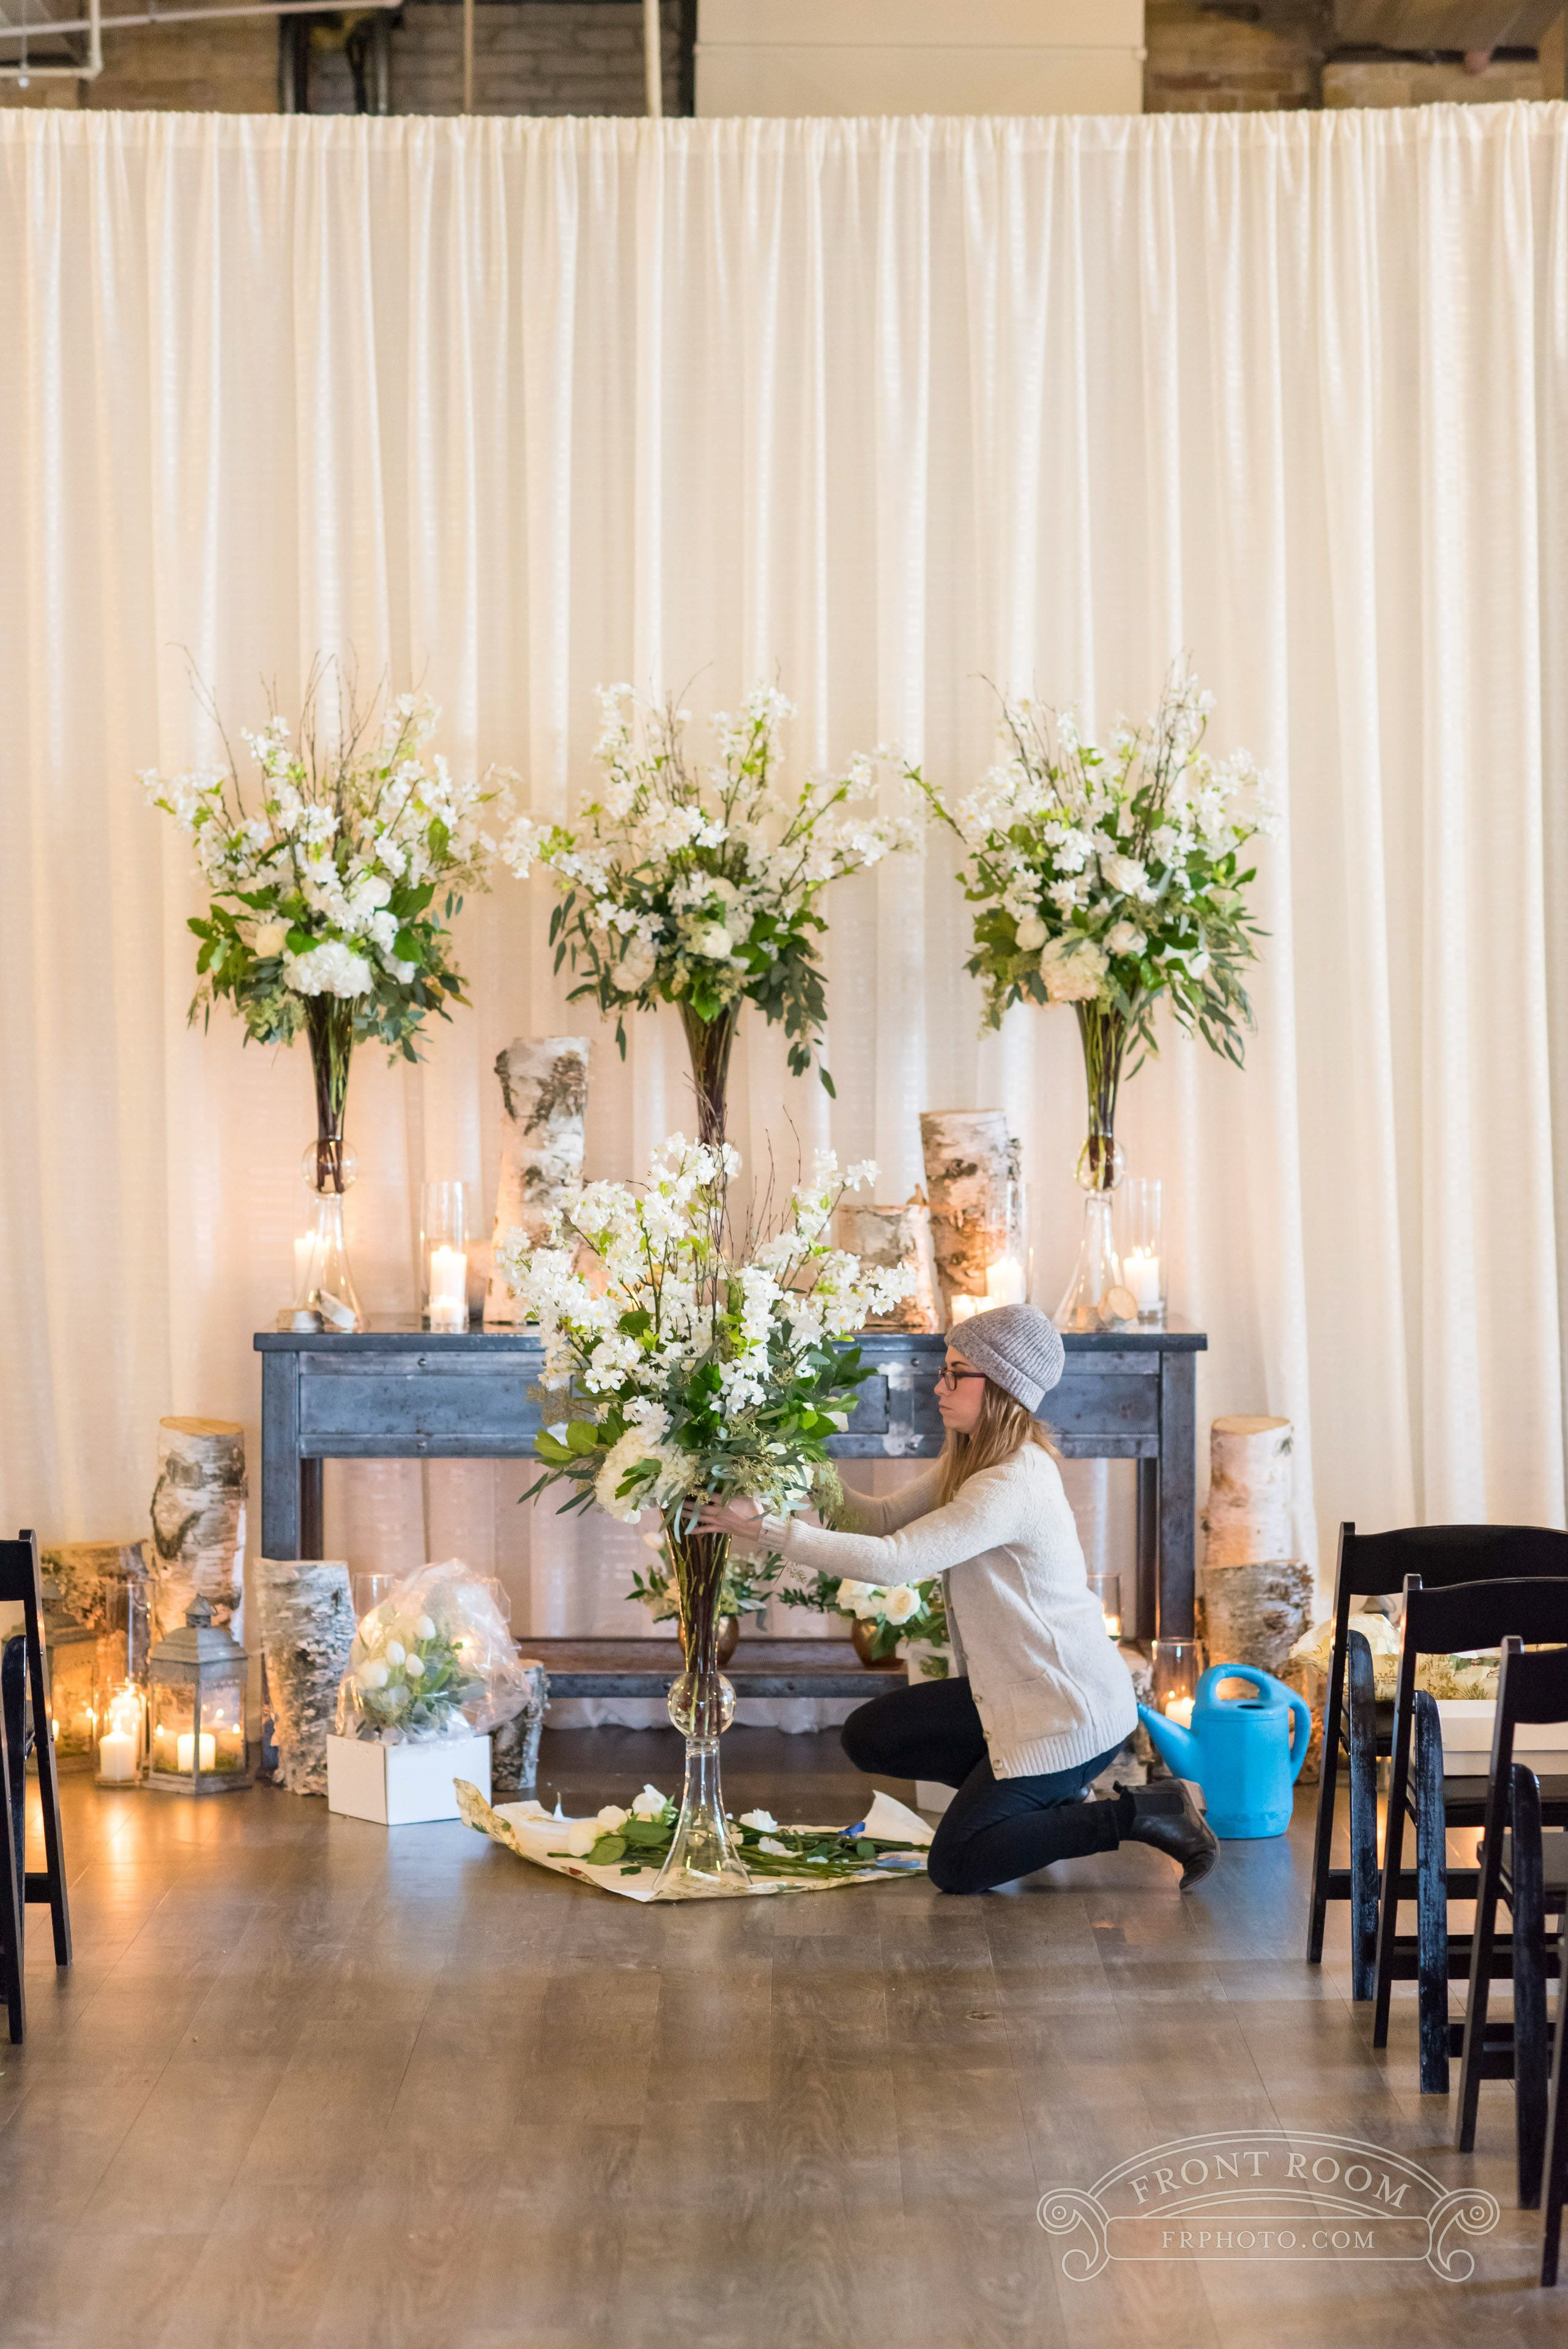 Chair Rental Milwaukee Portable Facial Our Dedicated Design Team Here At Belle Fiori Can Install And Tear For More Information On Wedding Services Contact Us In